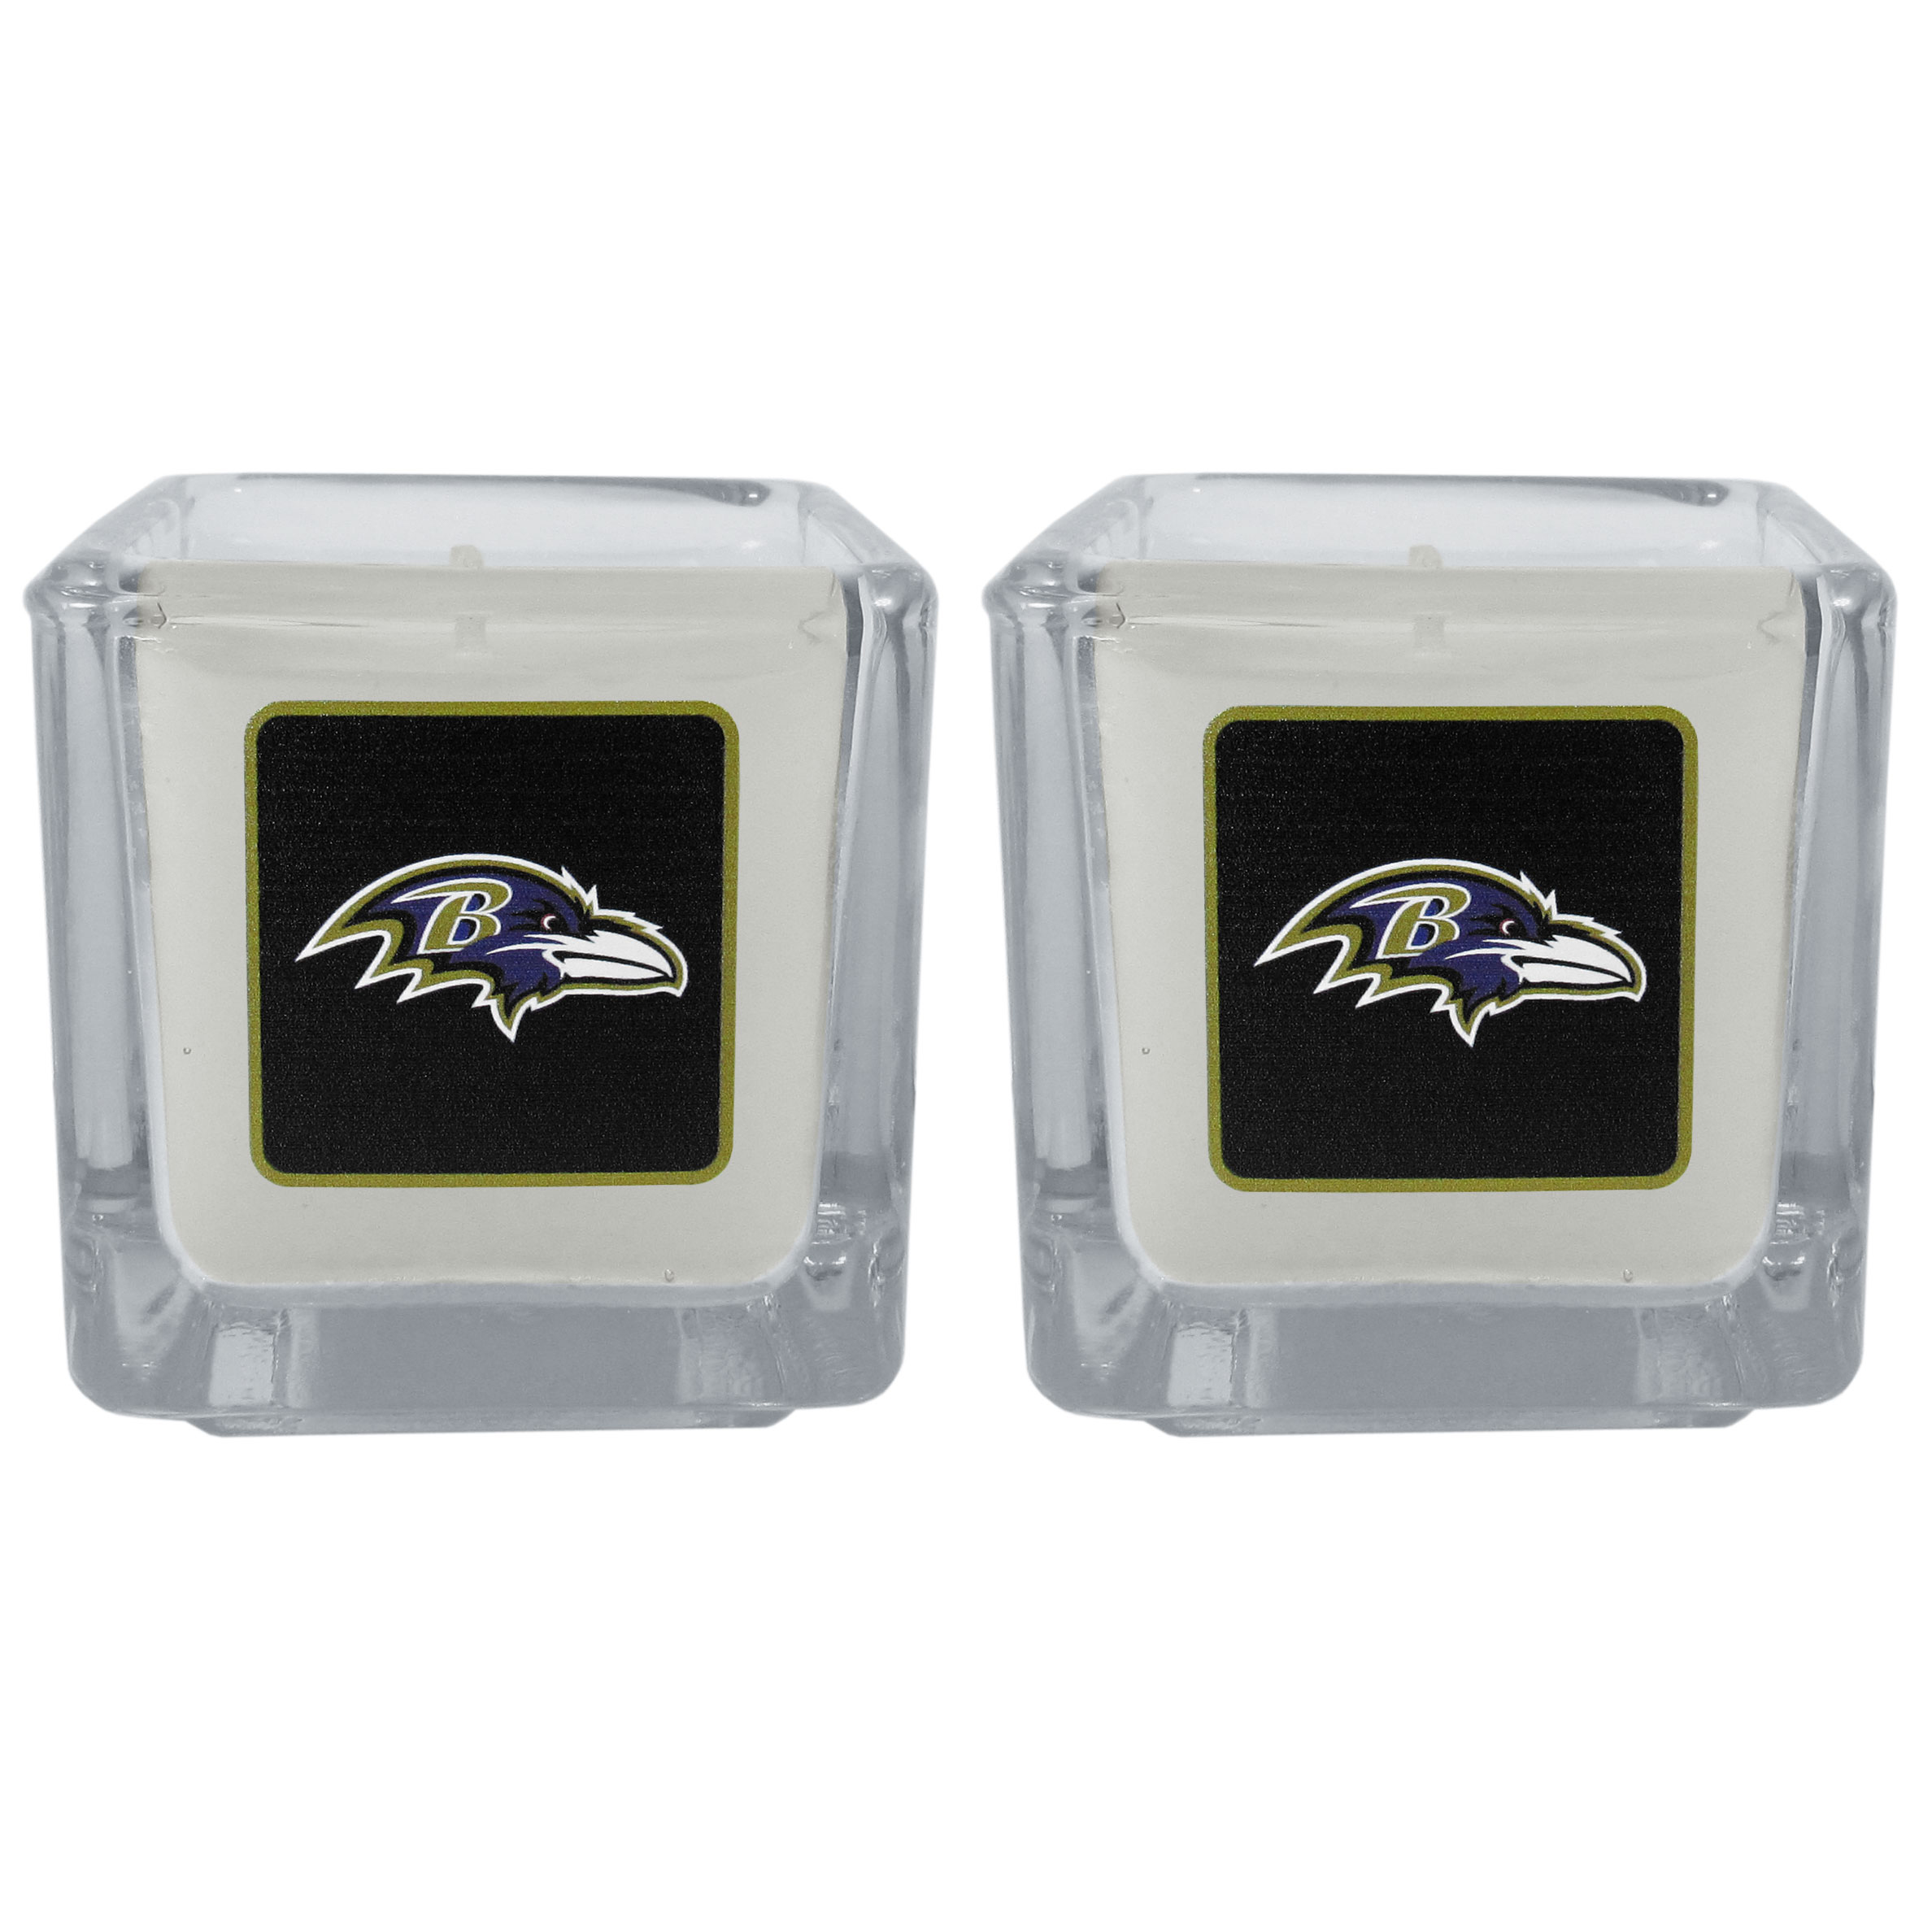 Baltimore Ravens Graphics Candle Set - Our candle set features 2 lightly vanilla scented candles with the Baltimore Ravens logo expertly printed on front. The candles are 2 inches tall in the votive style.